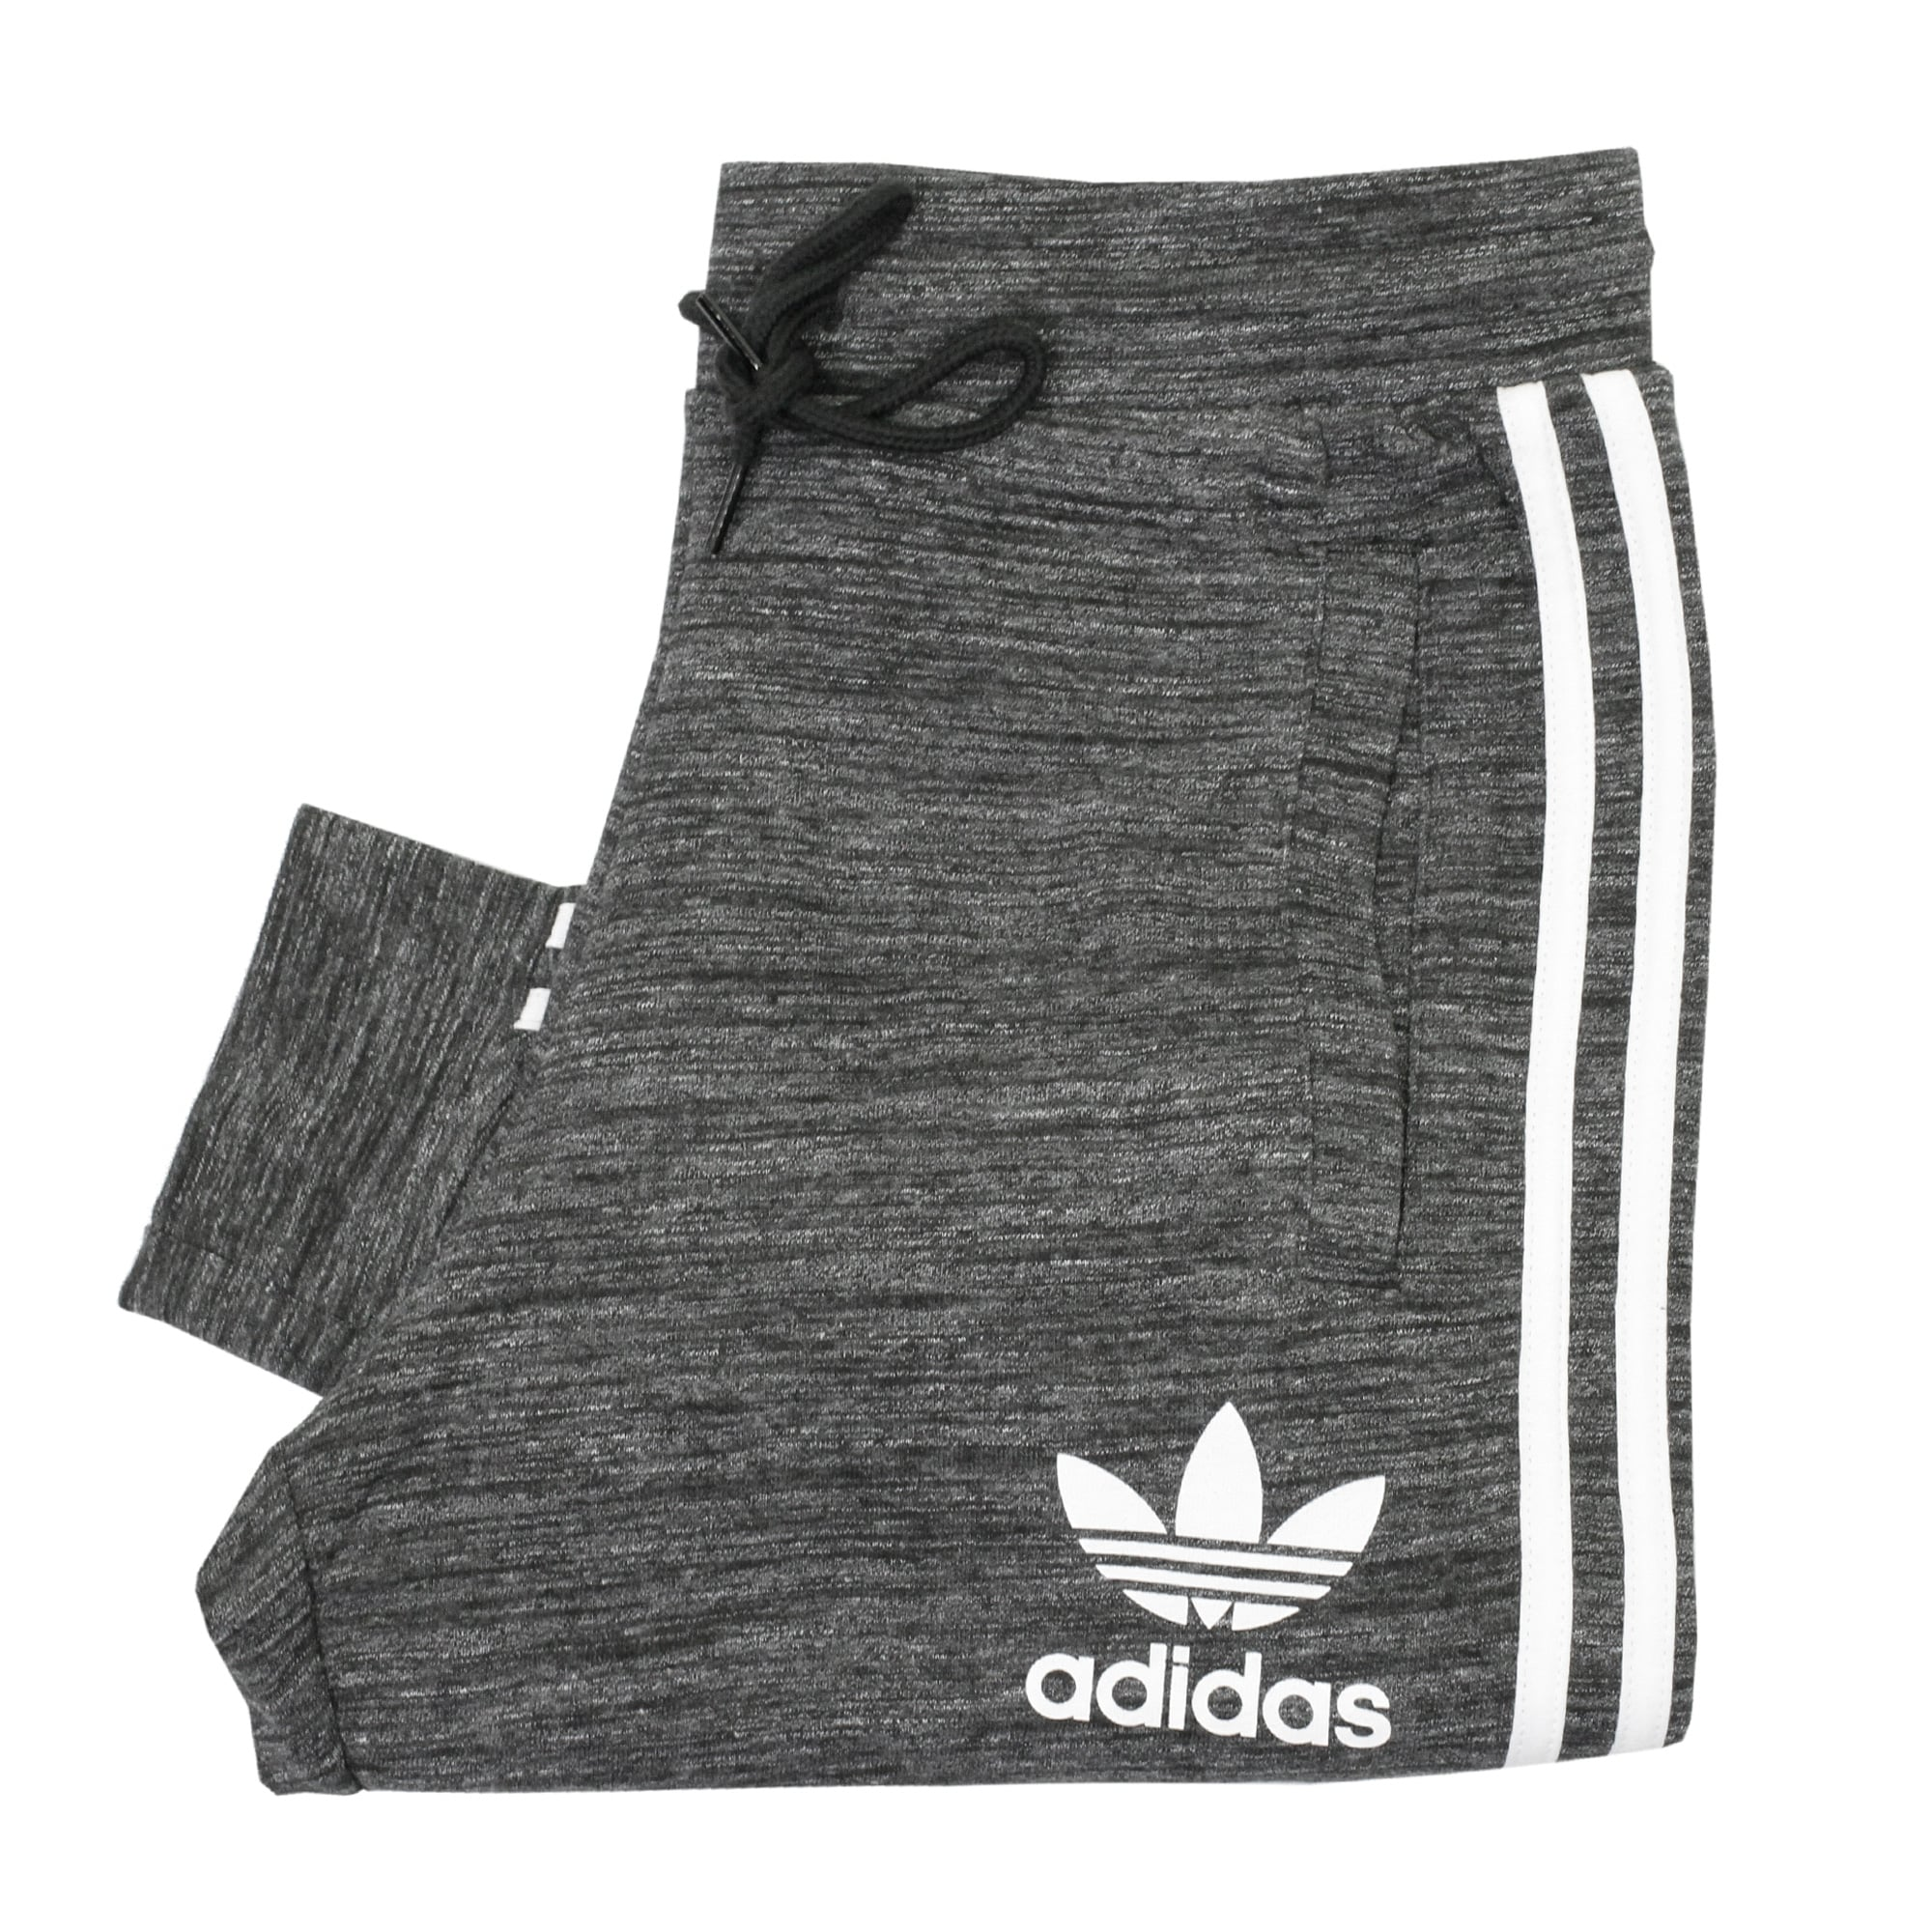 Adidas Originals CLFN FT Black Track Pants BK5905